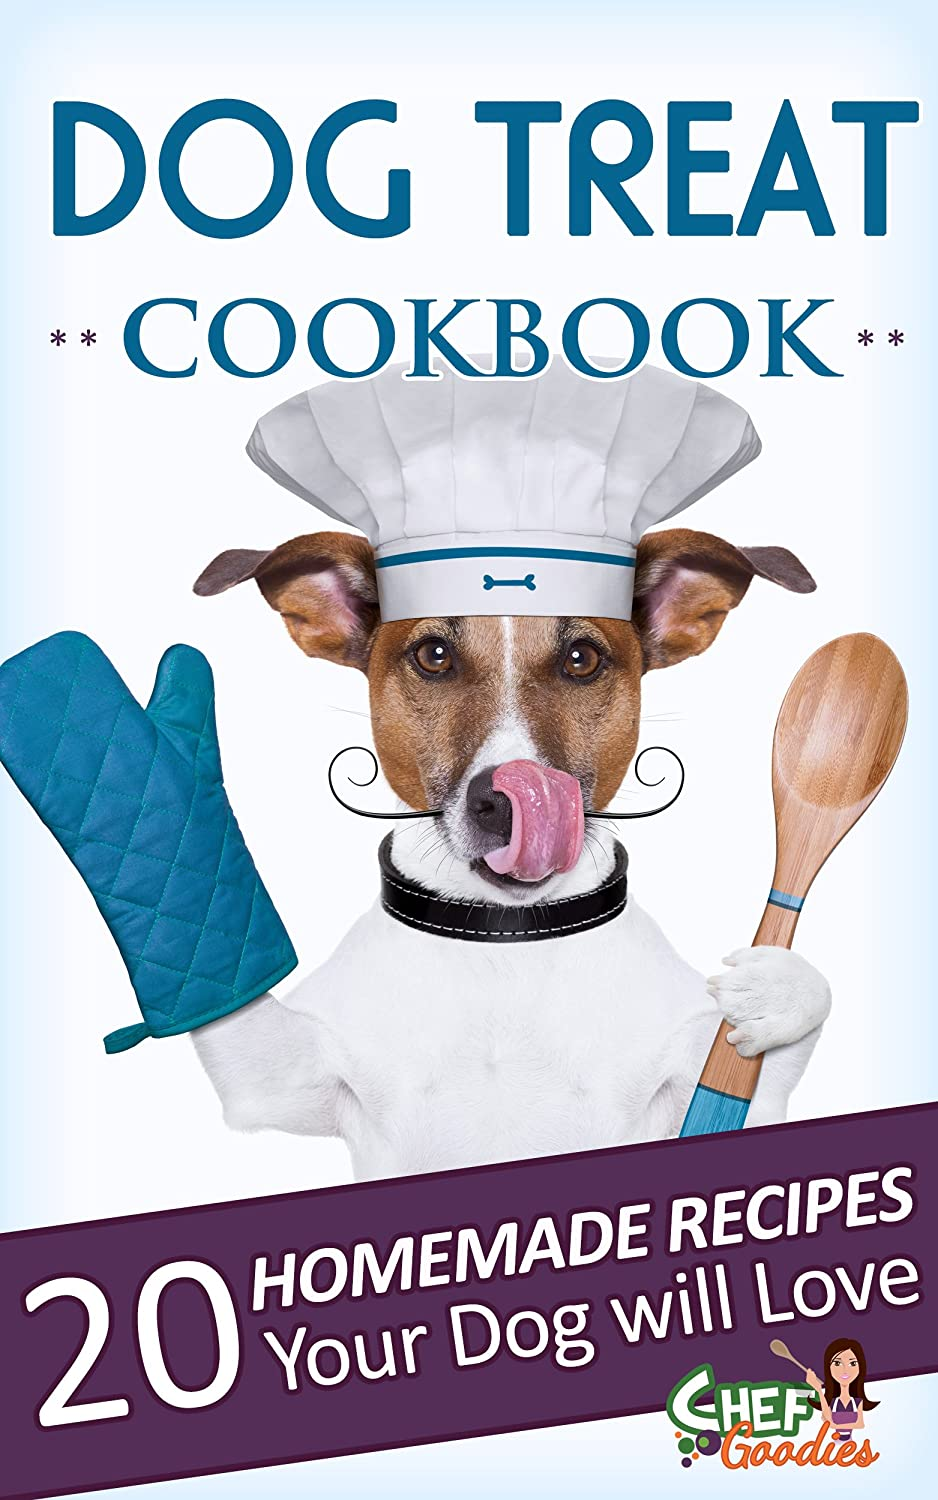 Dog Treat Cookbook: 20 Homemade Recipes Your Dog will Love